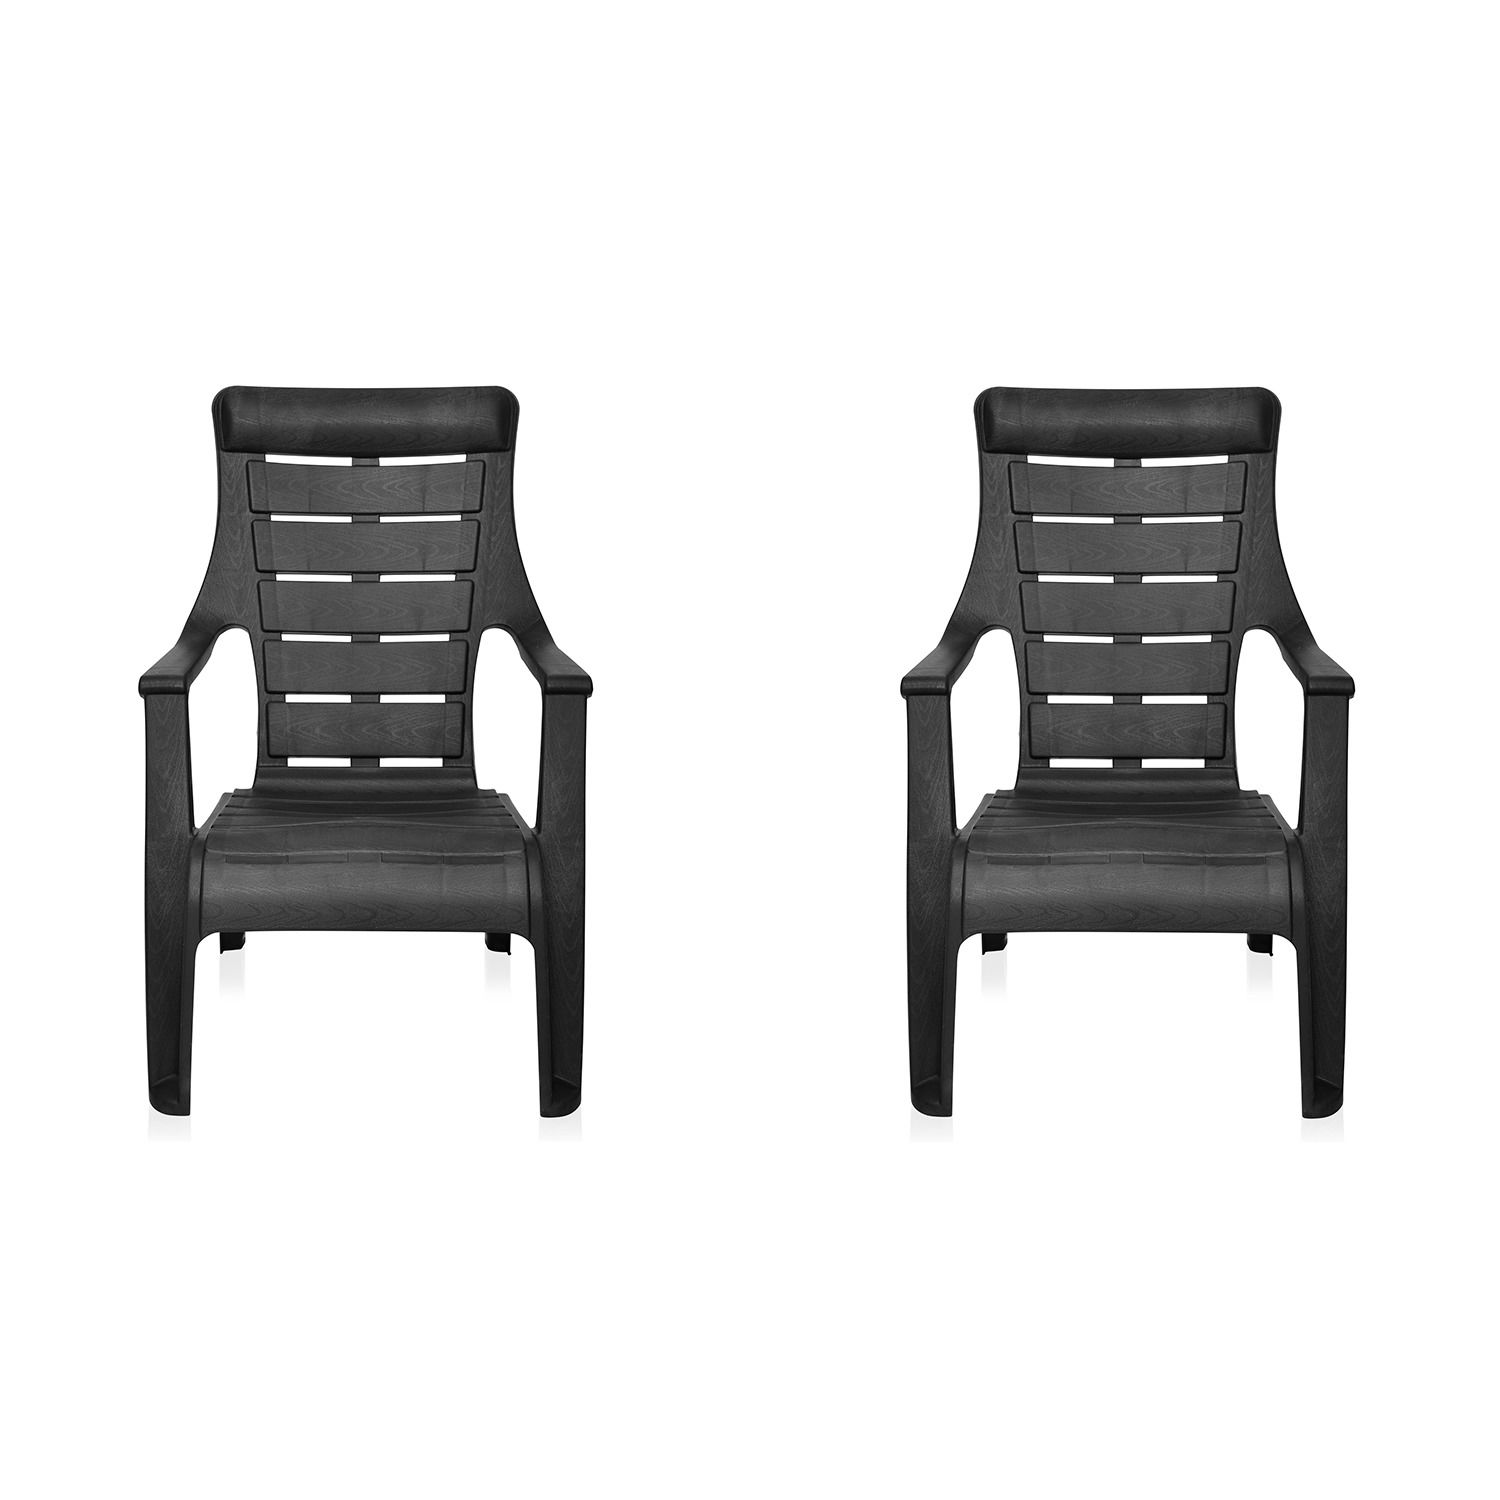 Buy Nilkamal Black Sunday Garden Chair Set Of 2 Flocsundaykit2blk Best Prices Industrybuying